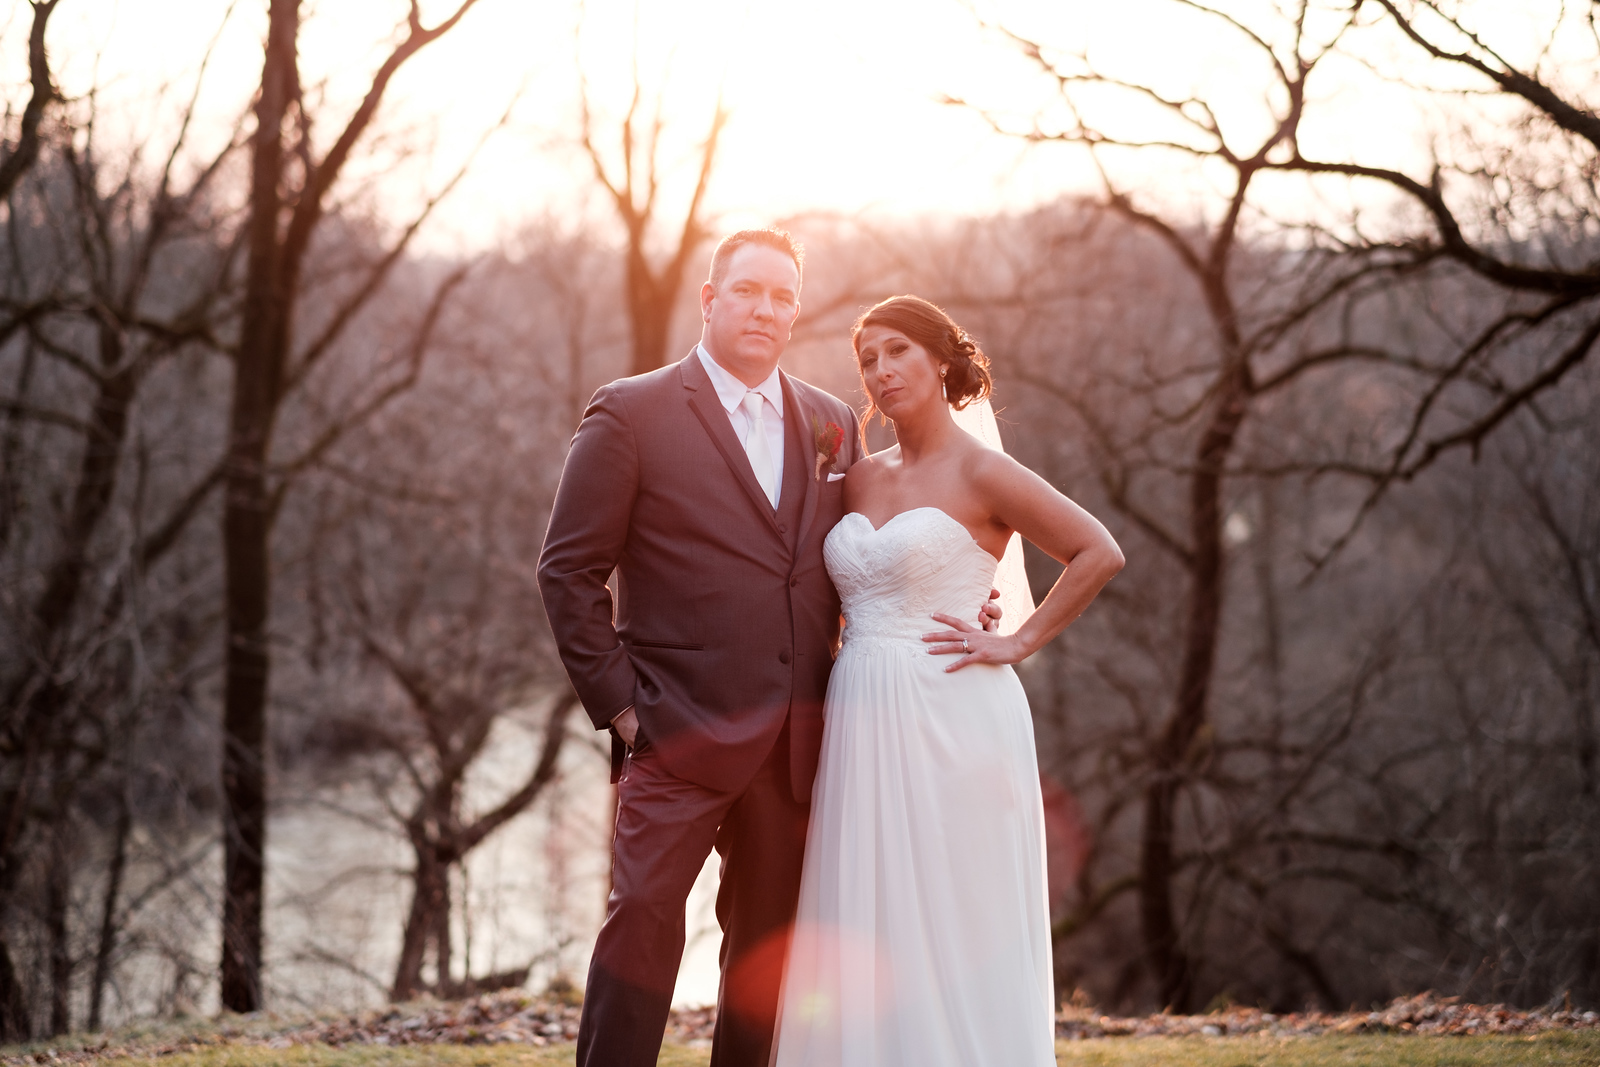 Lisa & Gregg's Kilbuck Creek Wedding